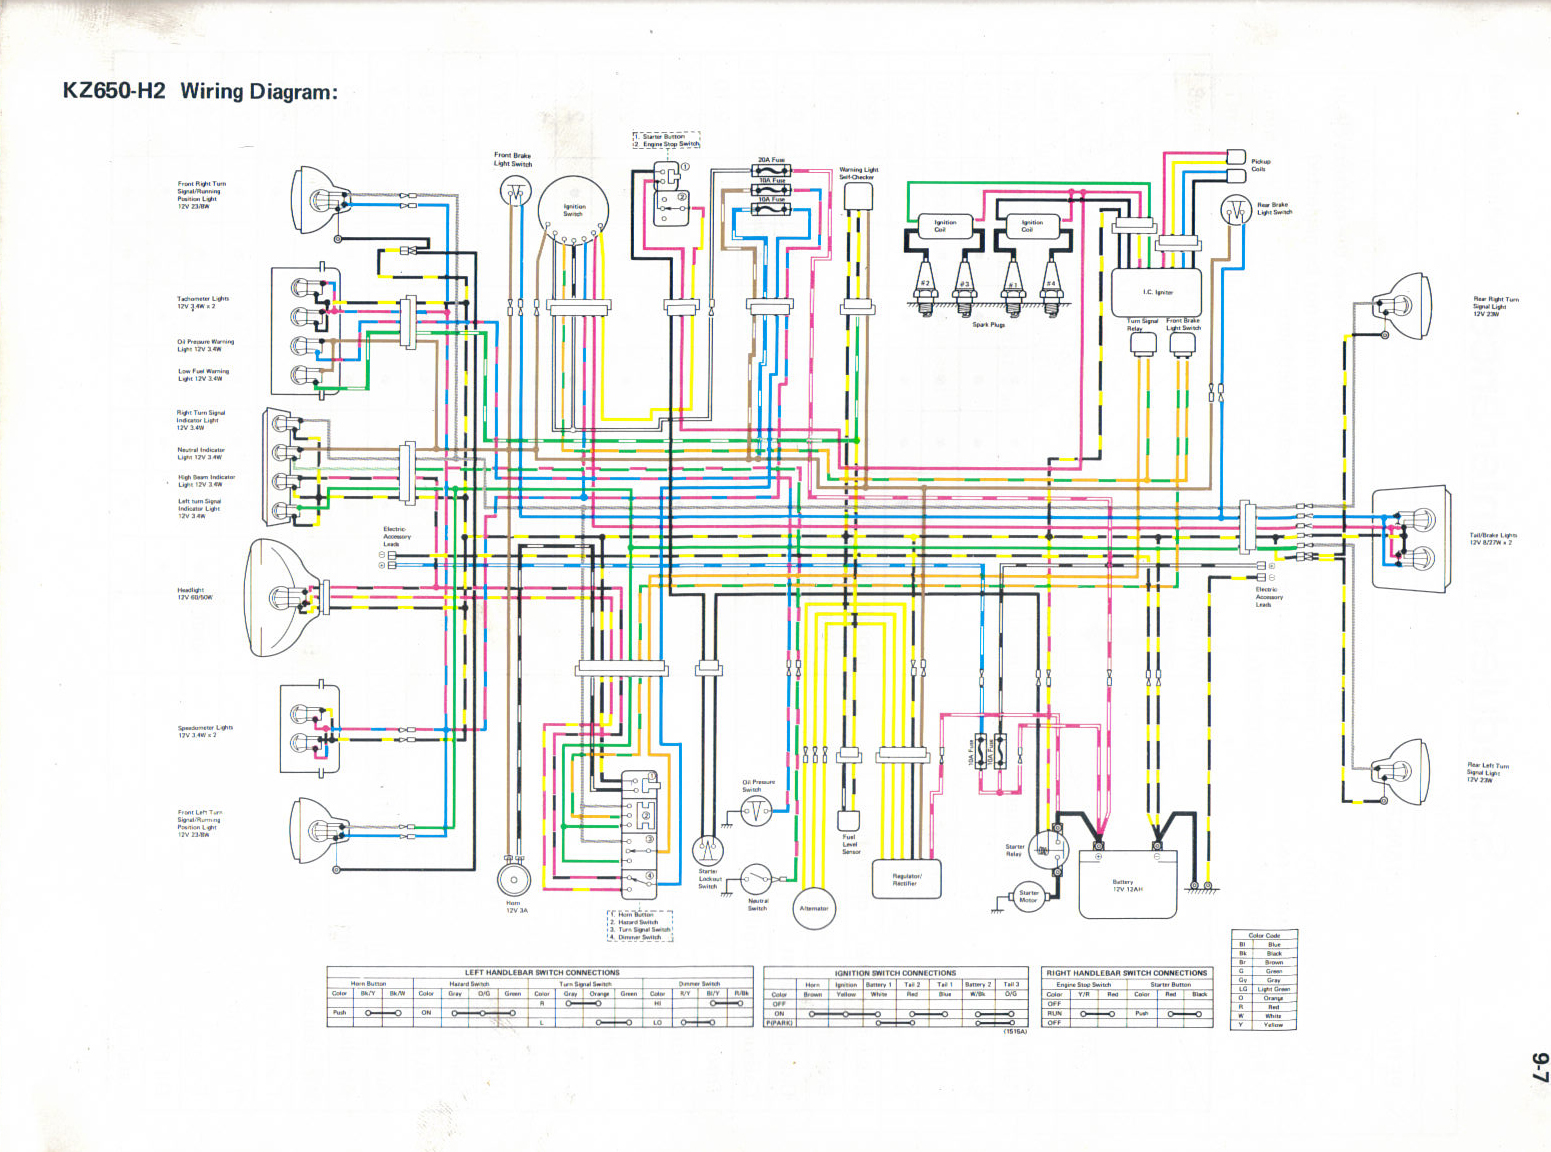 Kz650 Wiring Diagram Content Resource Of 1977 Camaro As Well 1979 Info Diagrams Rh Kawasaki 1980